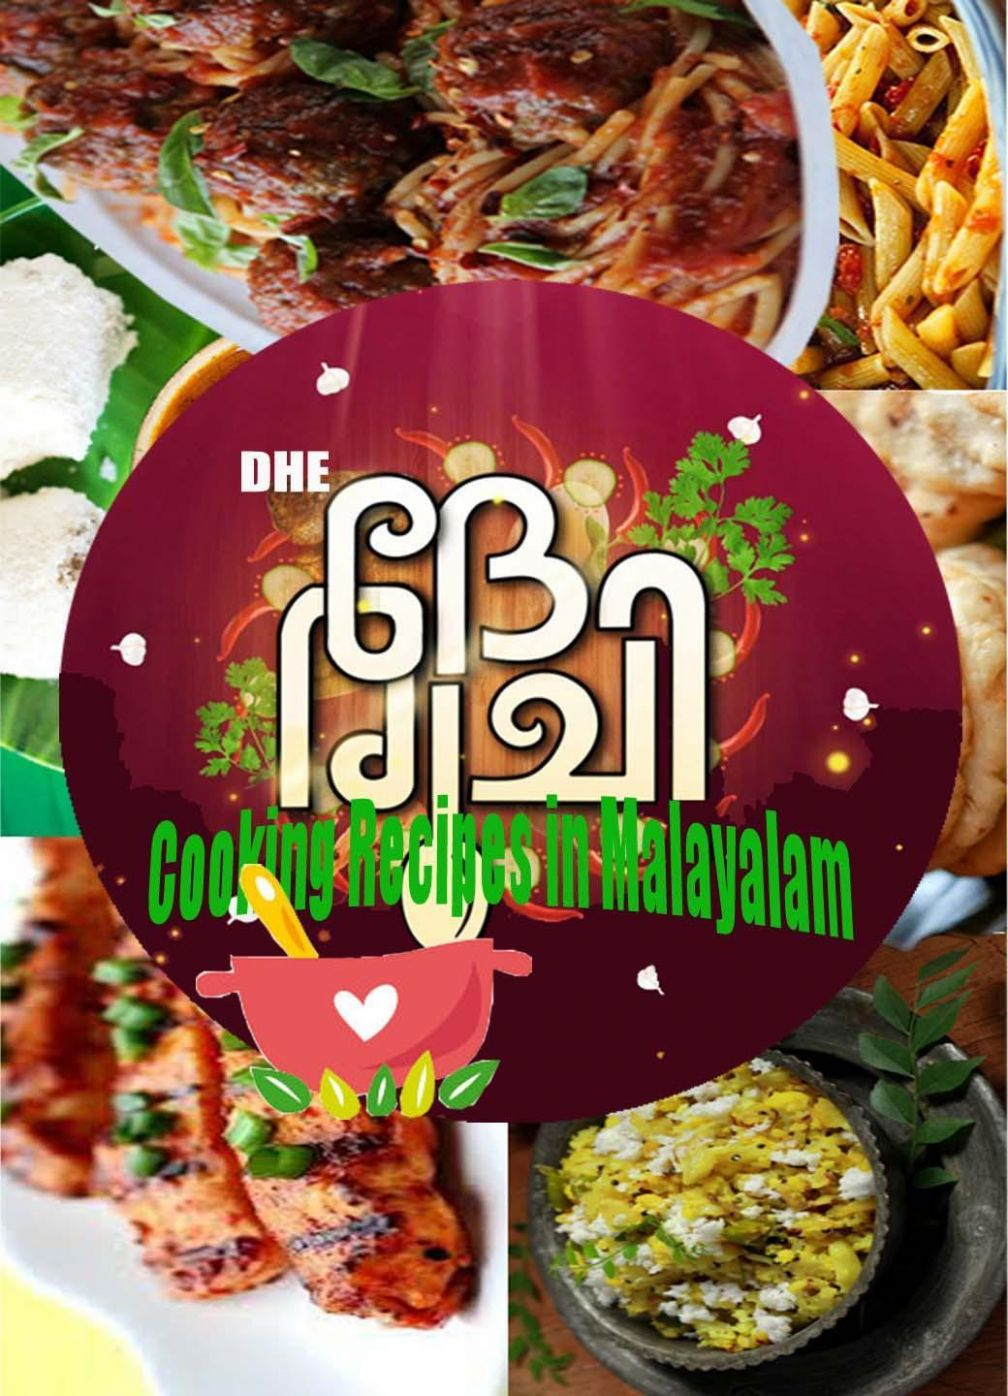 DHE RUCHI Cooking Recipes for Android - APK Download - Cooking Recipes In Malayalam